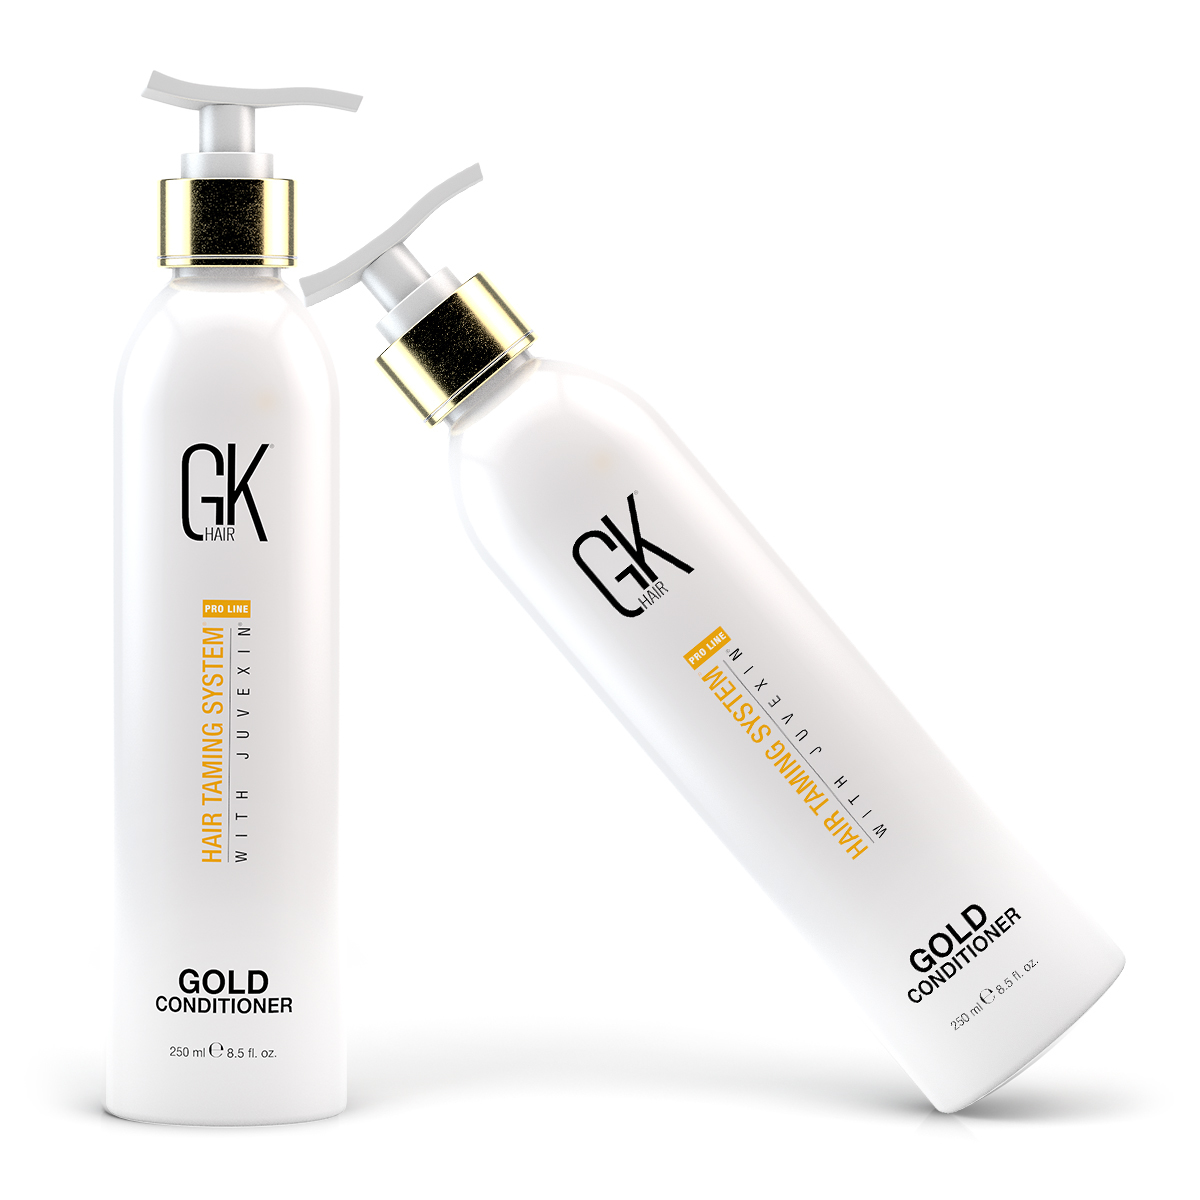 Кондиционер Global Keratin Gold Condinioner золотой250 мл.